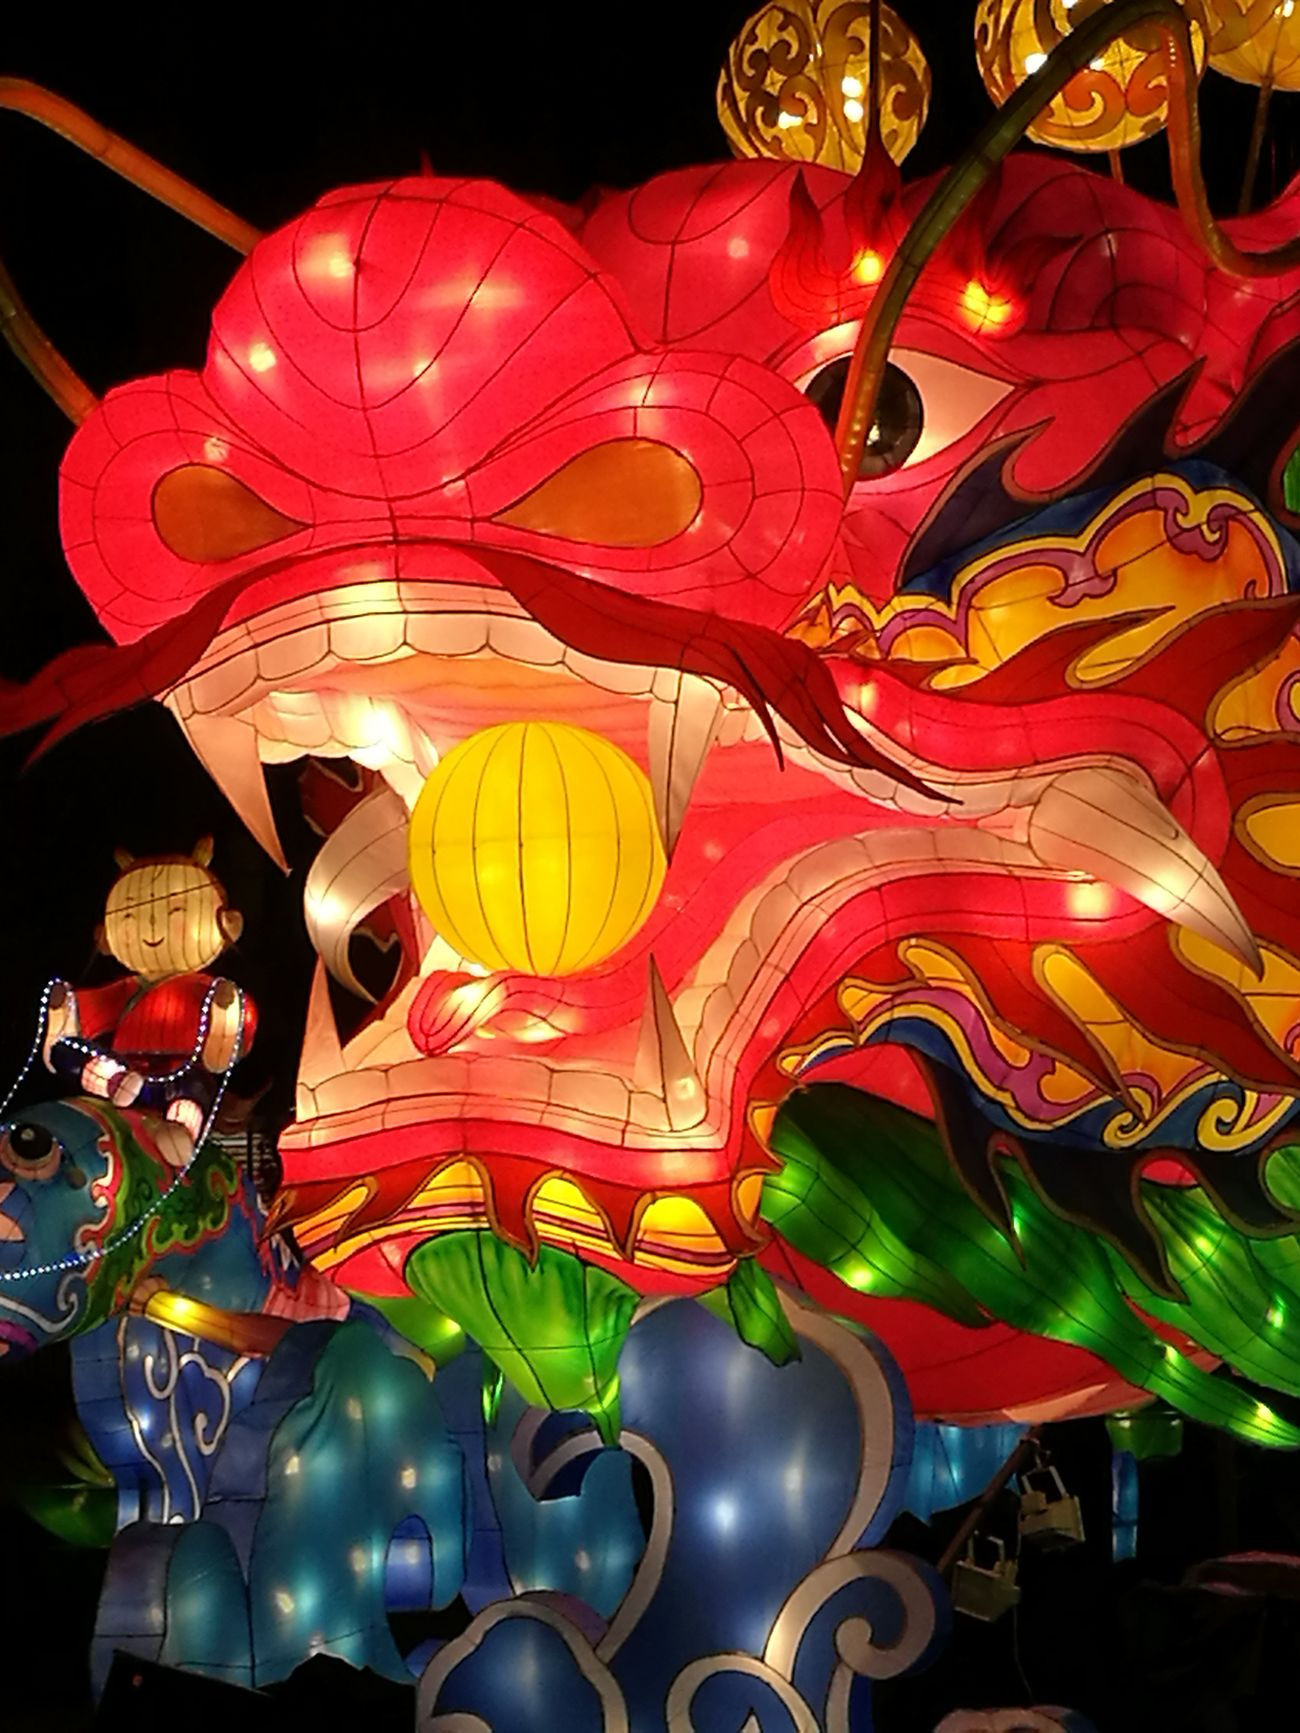 Fête des Lumières 🐲 Lovely dragon Cultures Chinese Lantern Chinese Lantern Festival Red Lantern Outdoors Sky Day Celebration Large Group Of People Technology Celebration Chinese Event Party Time Party Dragon Light Fete Des Lumieres Lyon Famous Tourist Attractions Mycity Lights Night Nightlife